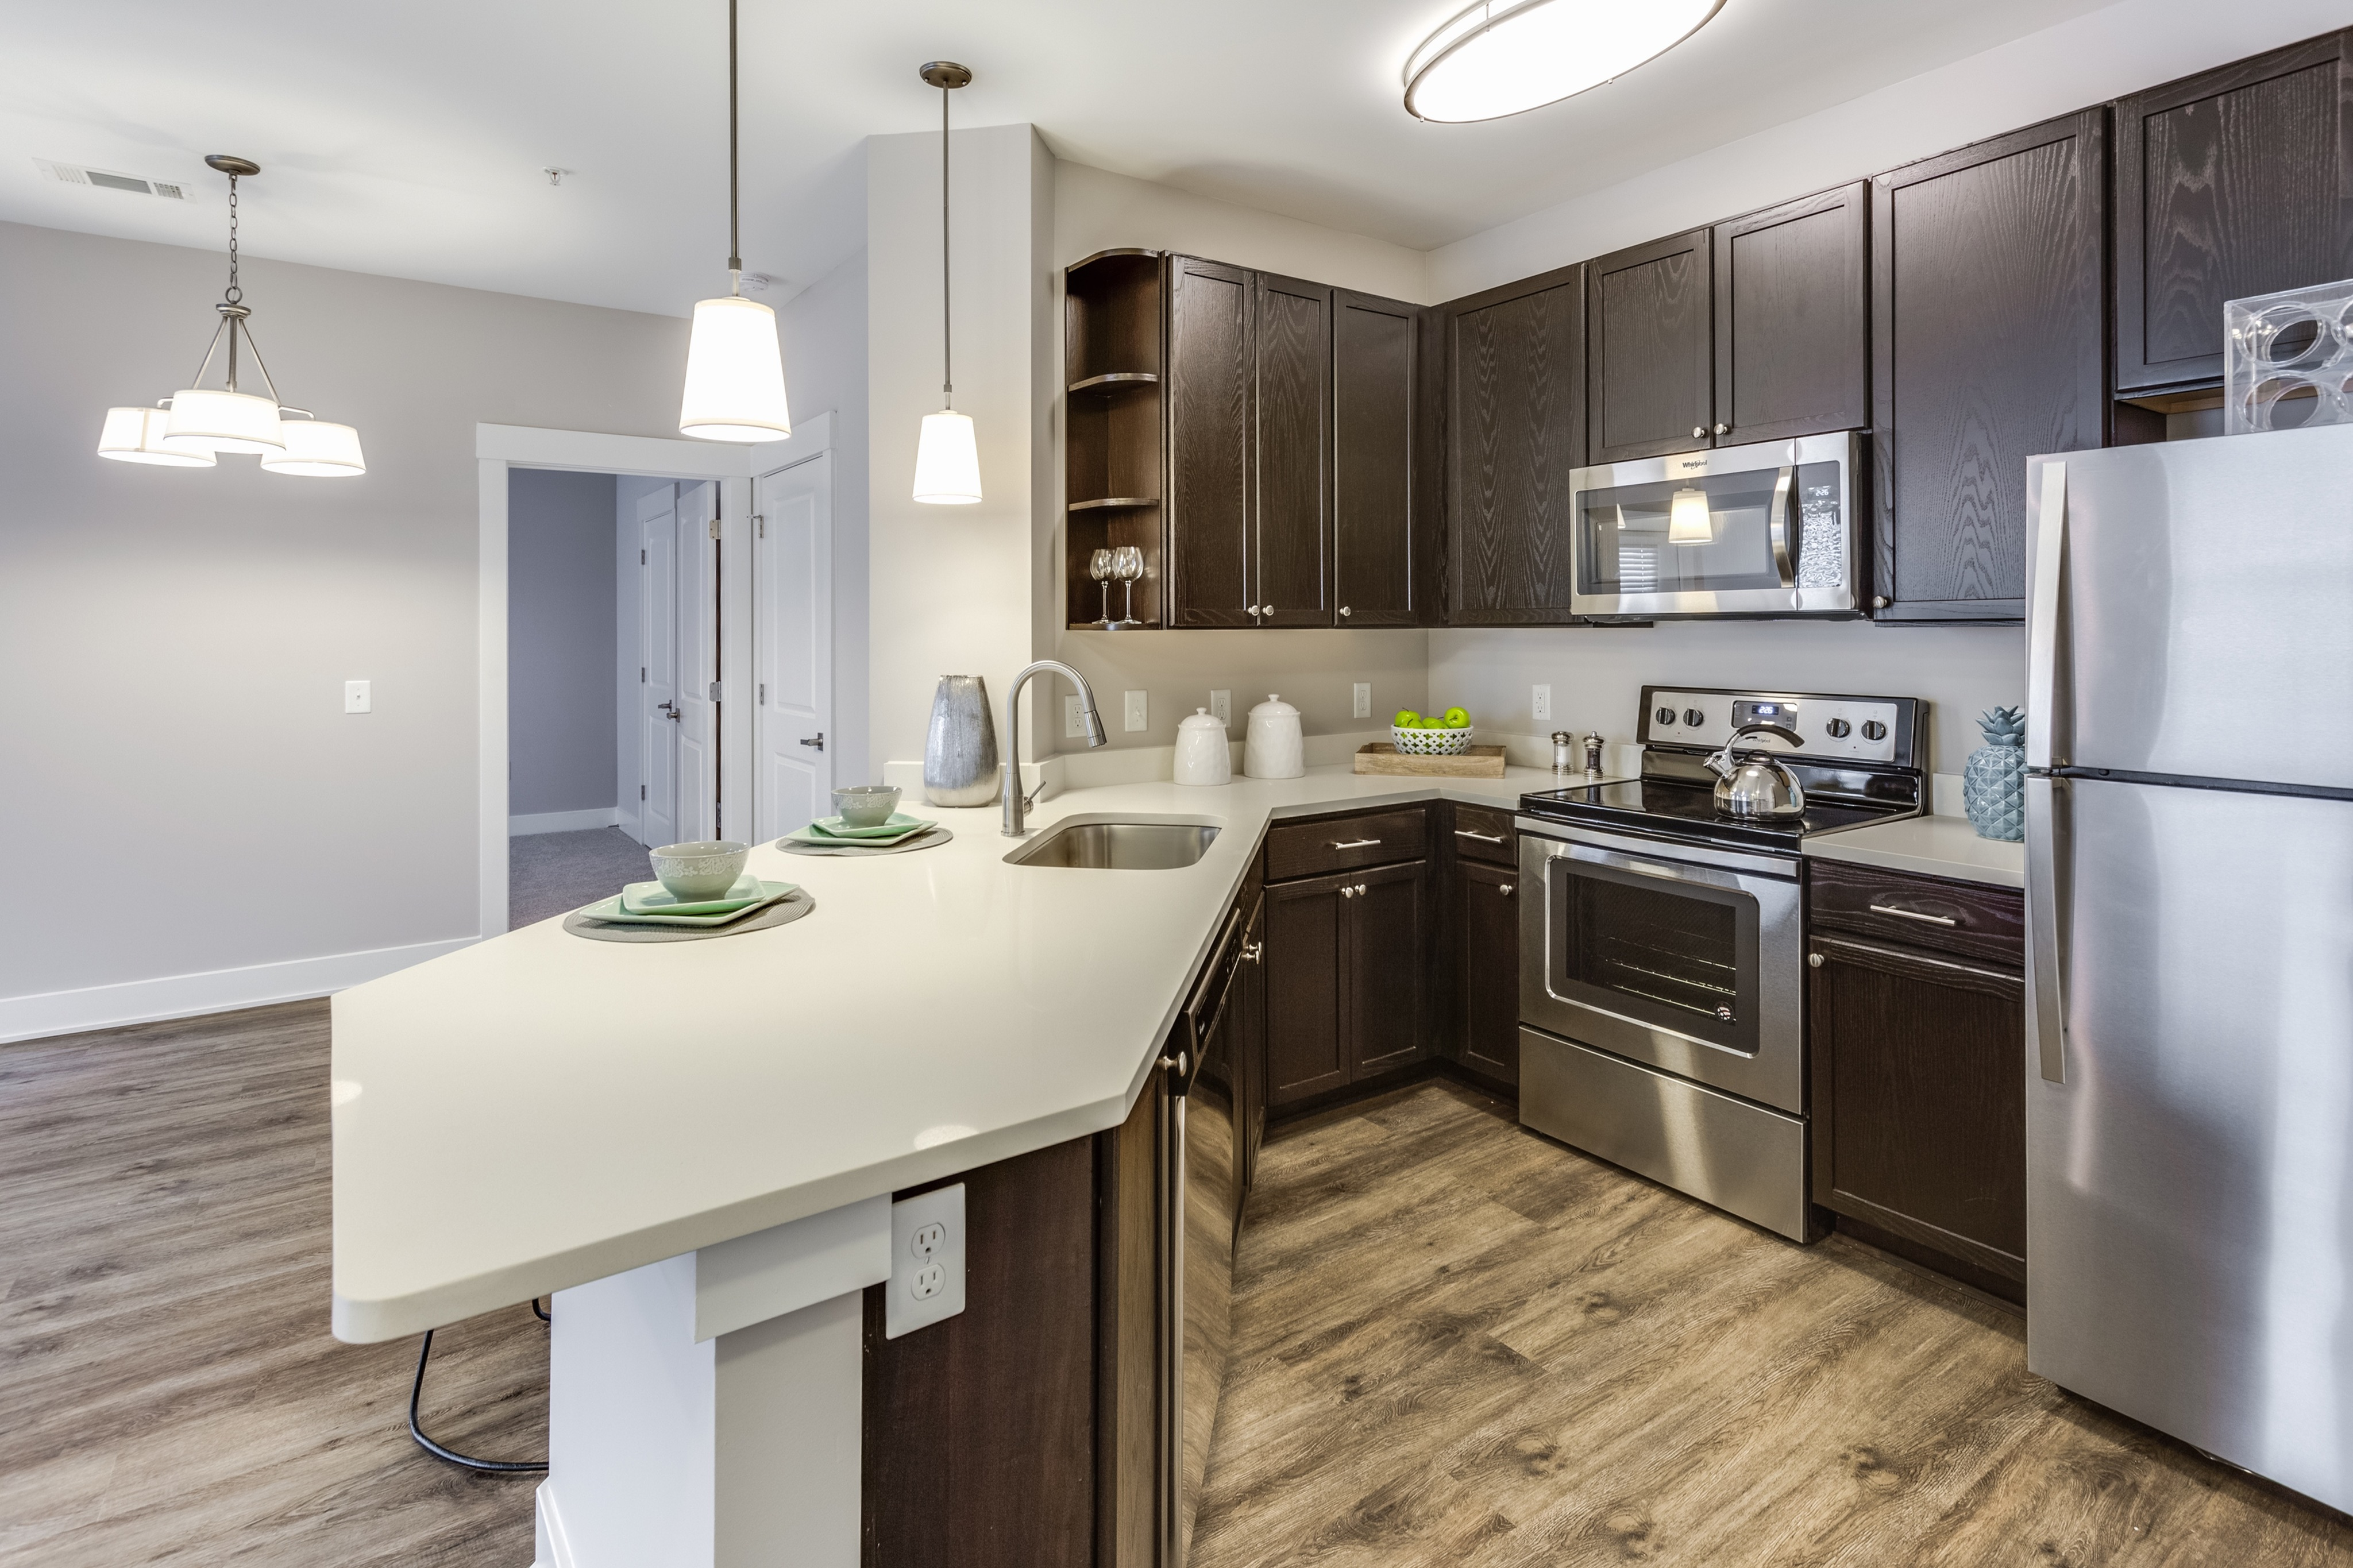 Image of Upgraded Appliance Package* for Cottonwood Reserve